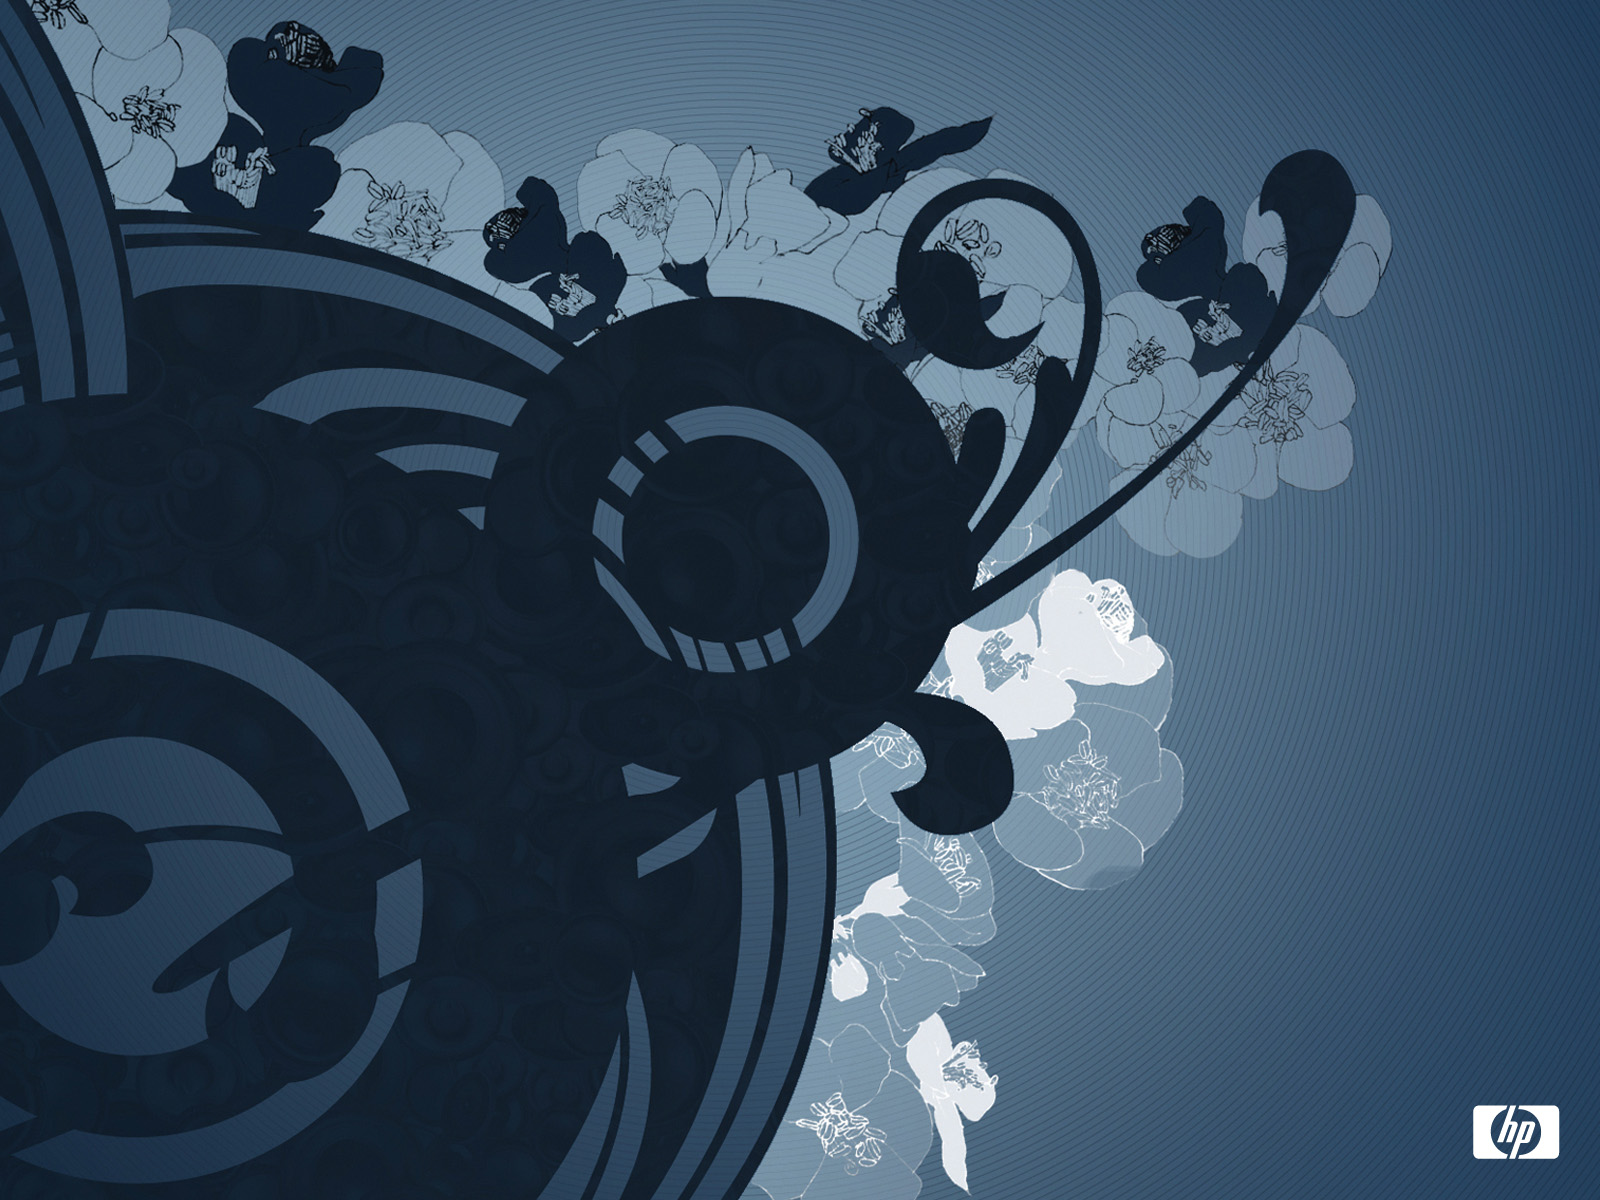 Cool Wallpapers For HP